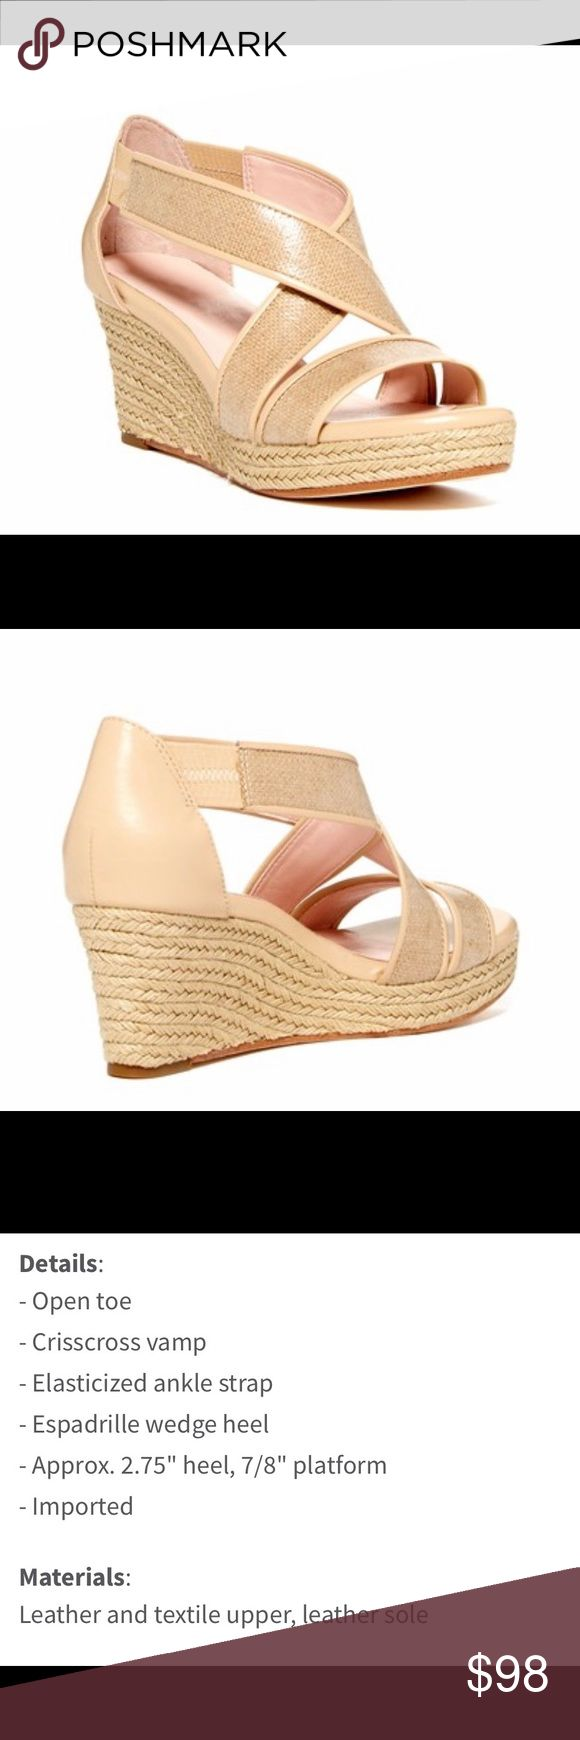 TARYN ROSE Krissy Espadrille Wedge Sandals 7.5 TARYN ROSE Krissy Espadrille Wedge Sandals Size 7.5. Stunning and In MINT Condition. Worn Only Once. All Signs of Wear are On The Soles. Details Included In Pictures. REASONABLE OFFERS ARE ALWAYS welcome! $219 Taryn Rose Shoes Espadrilles